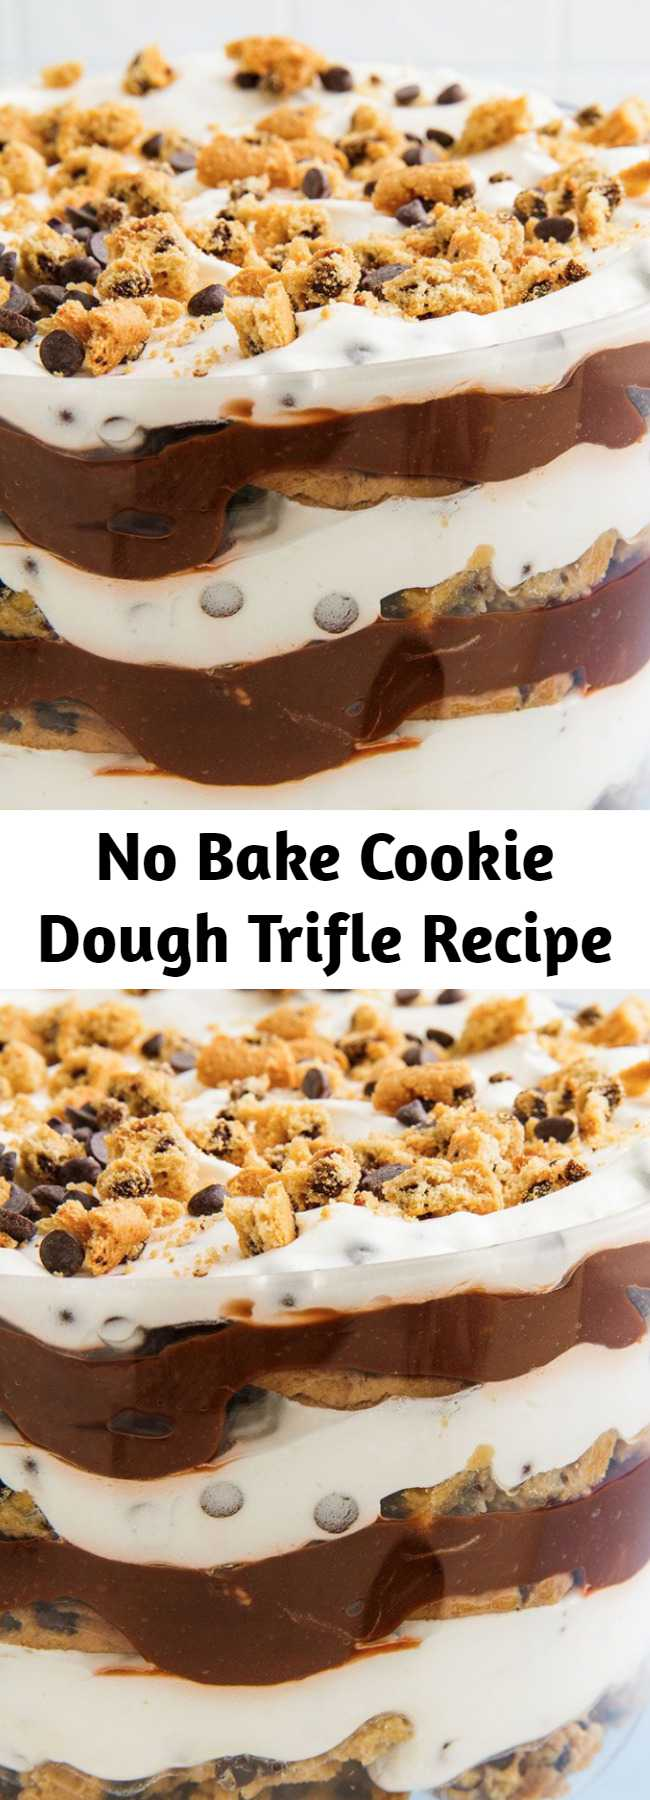 No Bake Cookie Dough Trifle Recipe - This no-bake treat is every cookie dough lover's dream. The best part? The cookie dough is eggless, flour-free, and 100% safe to eat. YOU'RE WELCOME. #easy #recipe #cookie #dough #cookiedough #nobake #dessert #chocolate #foracrowd